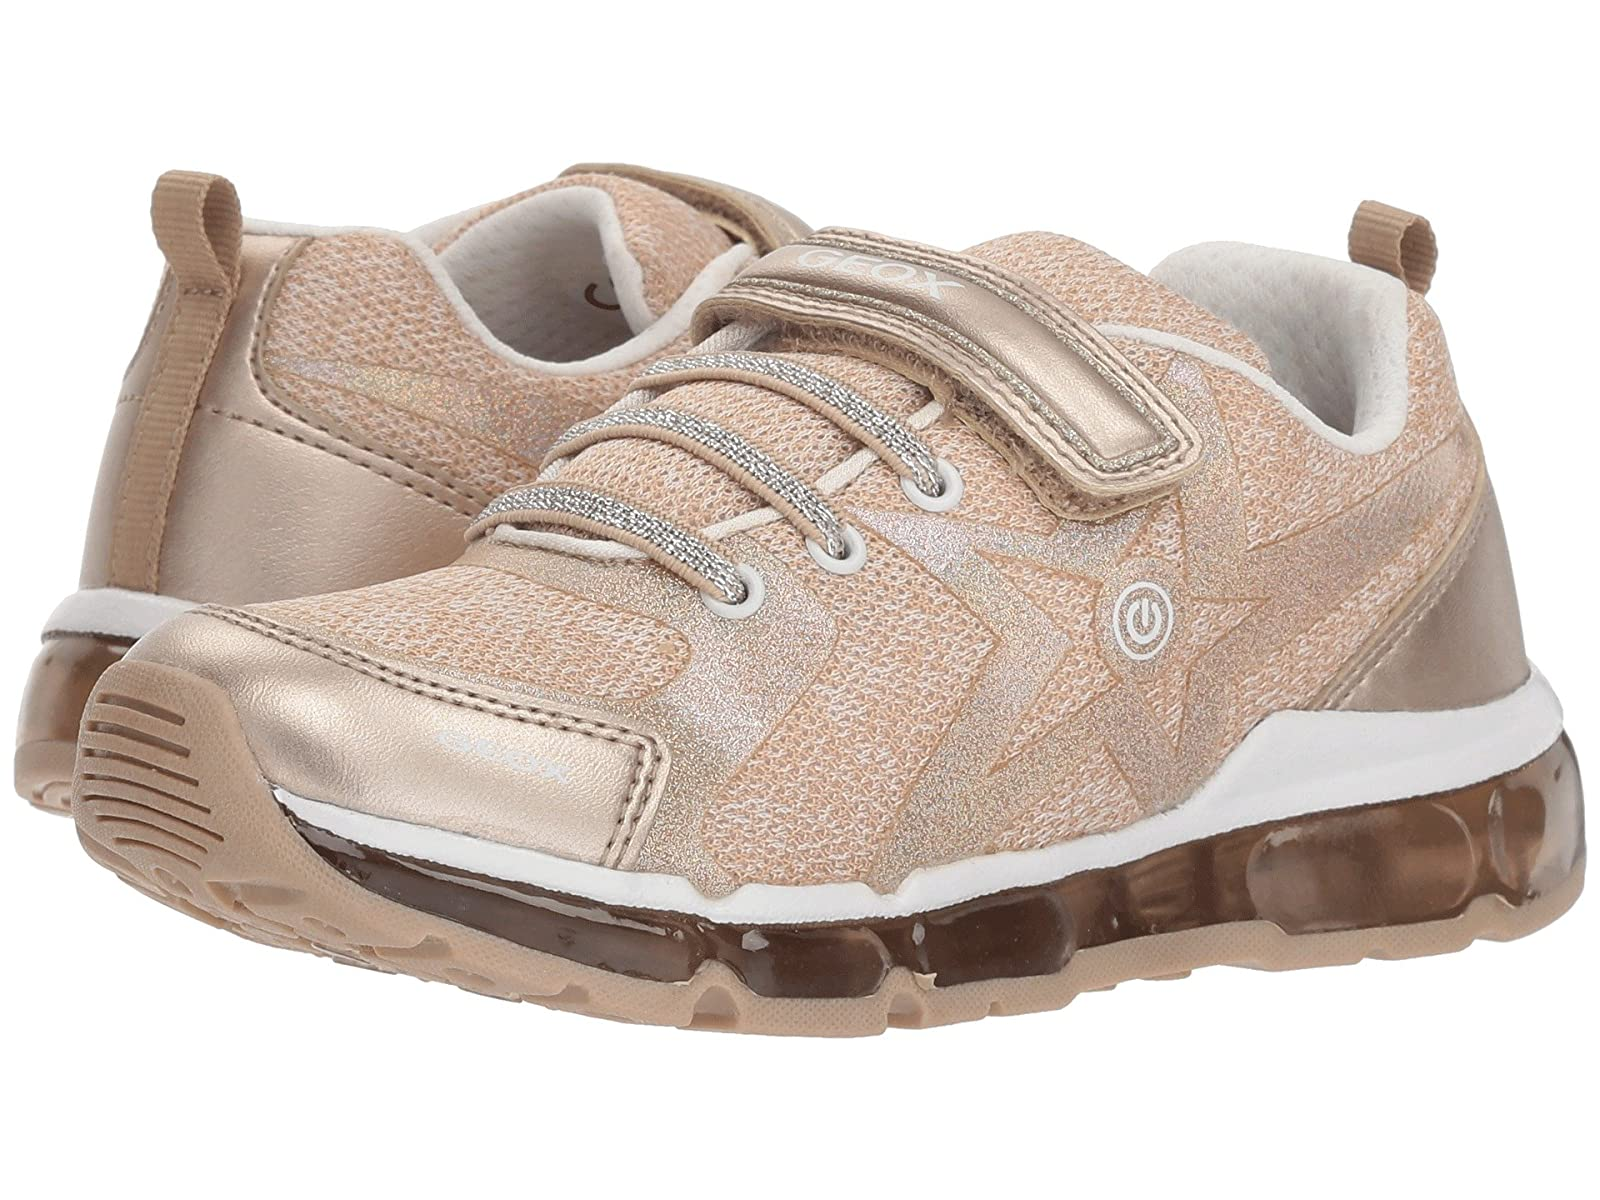 Geox Kids Android 18 (Little Kid/Big Kid)Cheap and distinctive eye-catching shoes